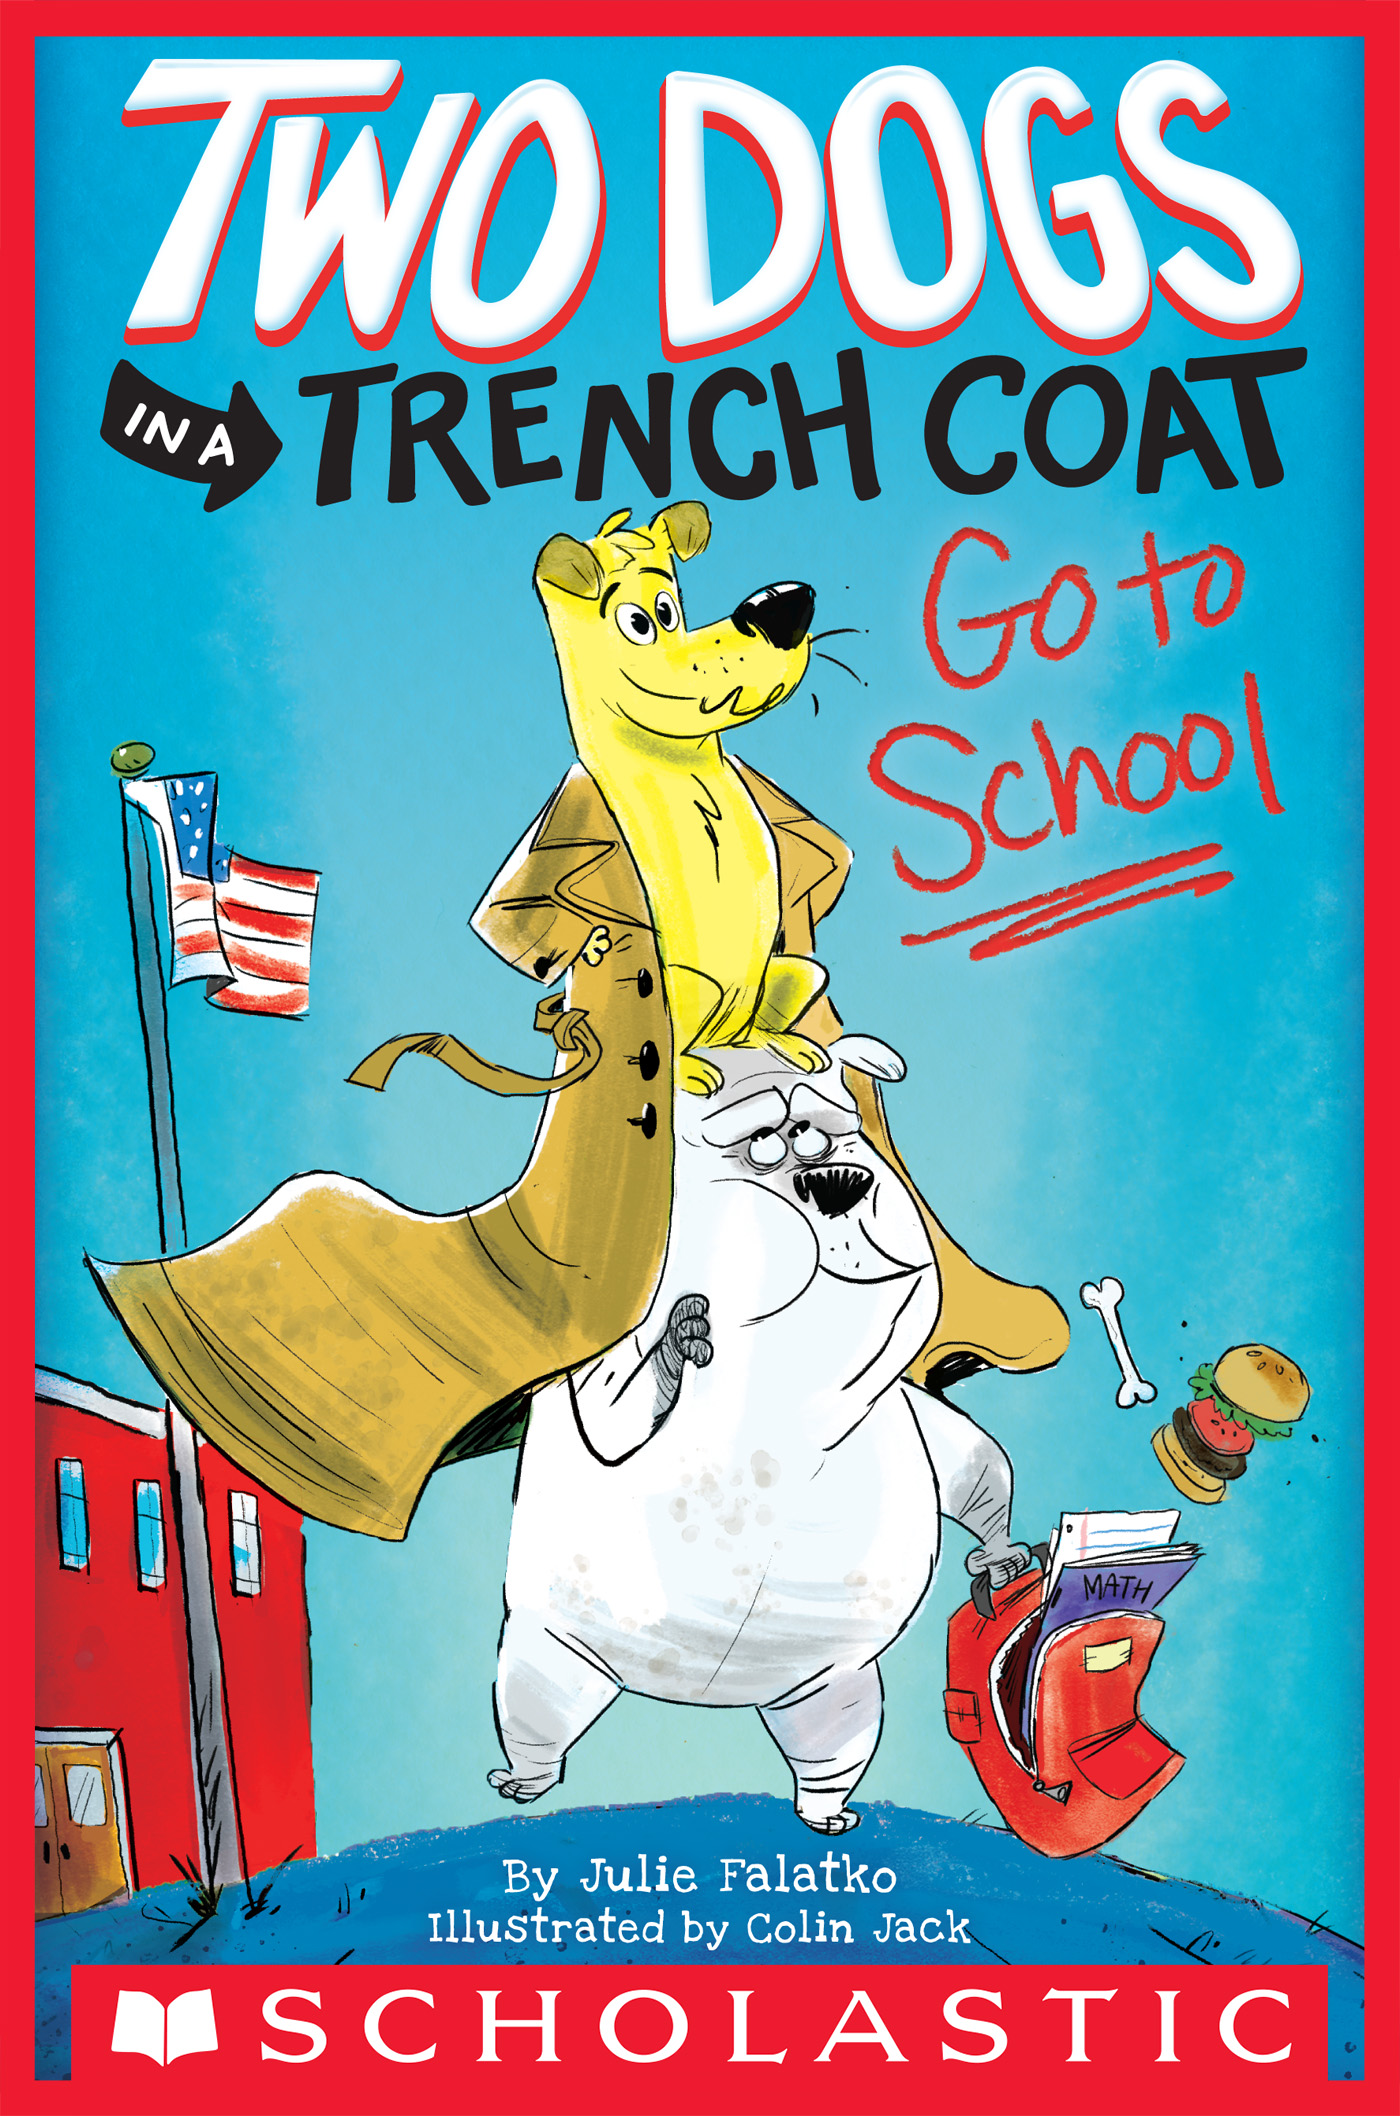 Two Dogs in a Trench Coat Go to School (Two Dogs in a Trench Coat #1)